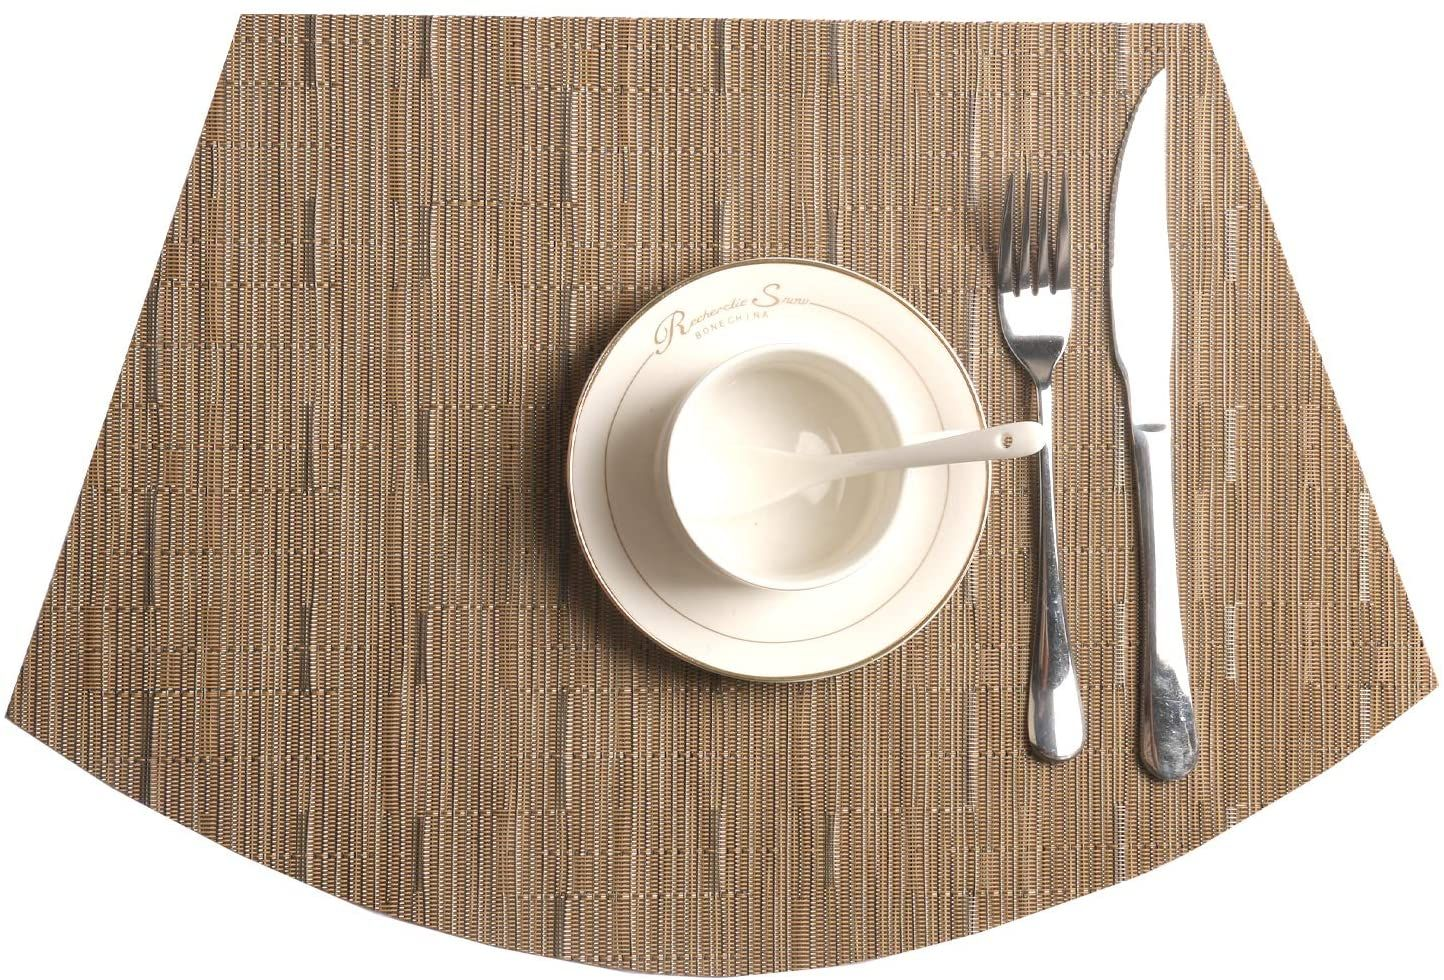 Amazon Com Shacos Round Table Placemats Wedge Placemats Set Of 4 Heat Resistant Table Mats Washable 4 Bamboo Placemats For Round Table Table Mats Placemats